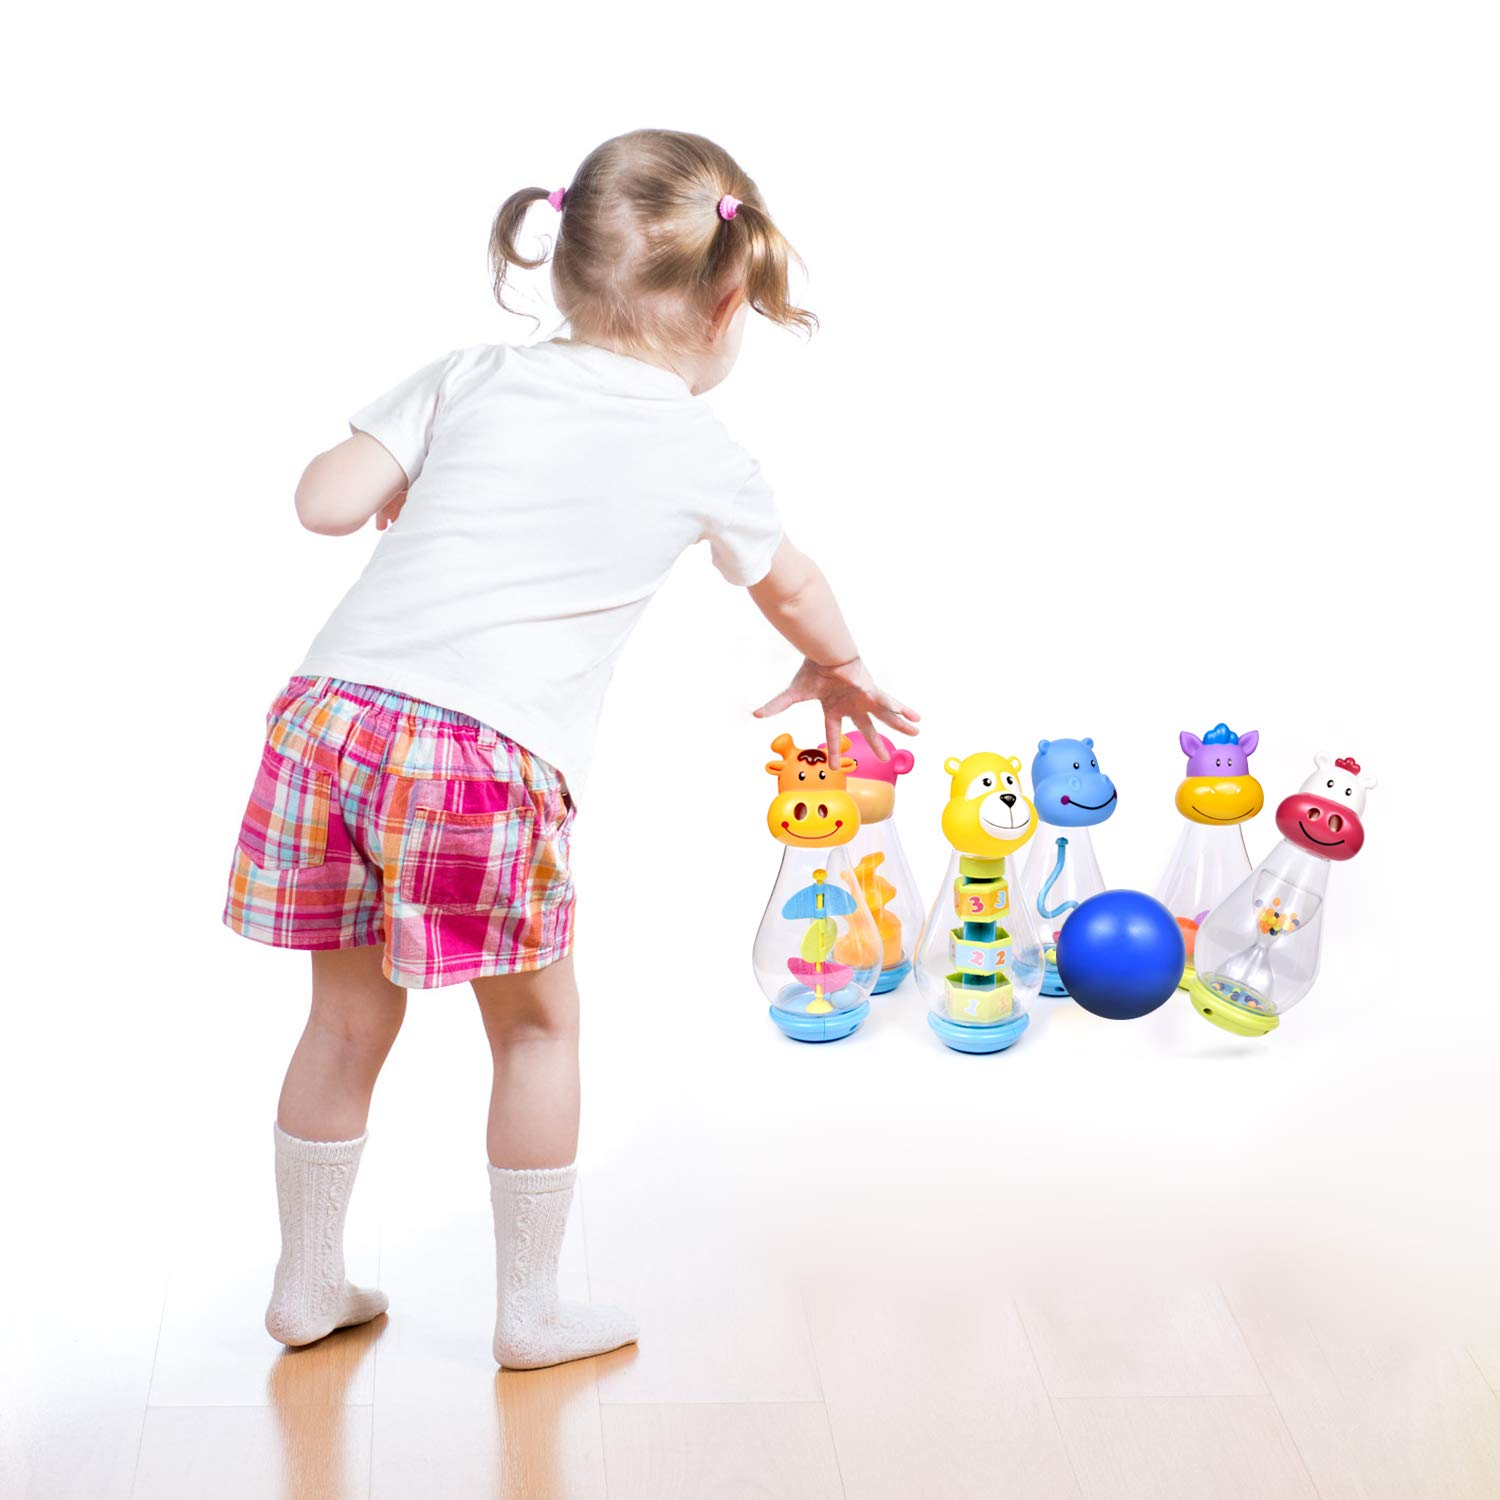 Bowling Set for Toddlers with 6 Animal Head Bowling Pins and 2 Bowling Balls, Toddler Outdoor Toys, Bowling Game for Kids by FUN LITTLE TOYS (Image #2)